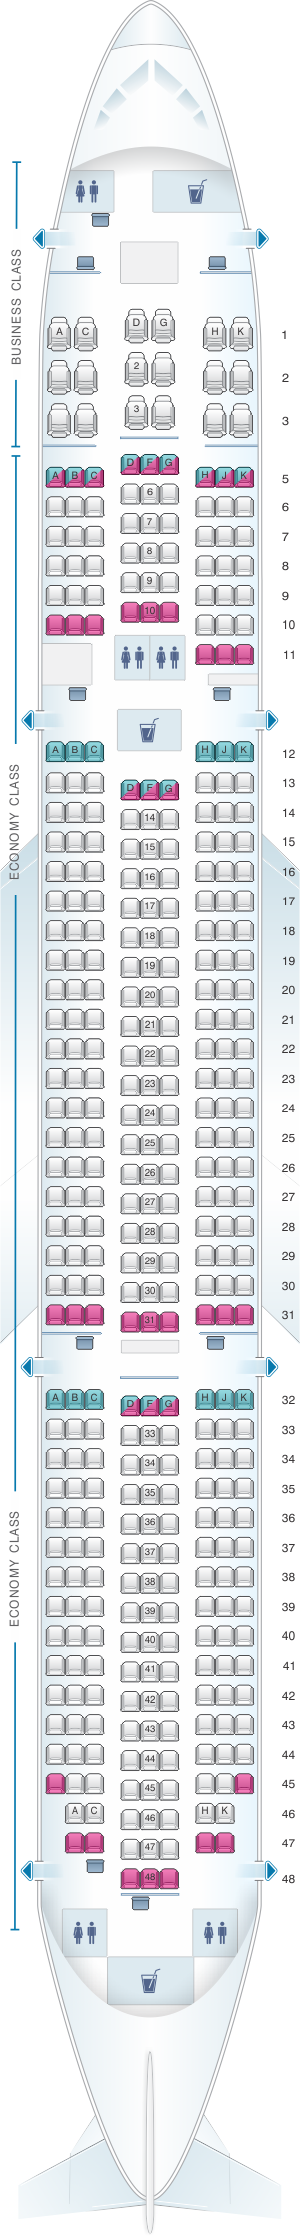 Seat map for ANA - All Nippon Airways Boeing B787-9 domestic